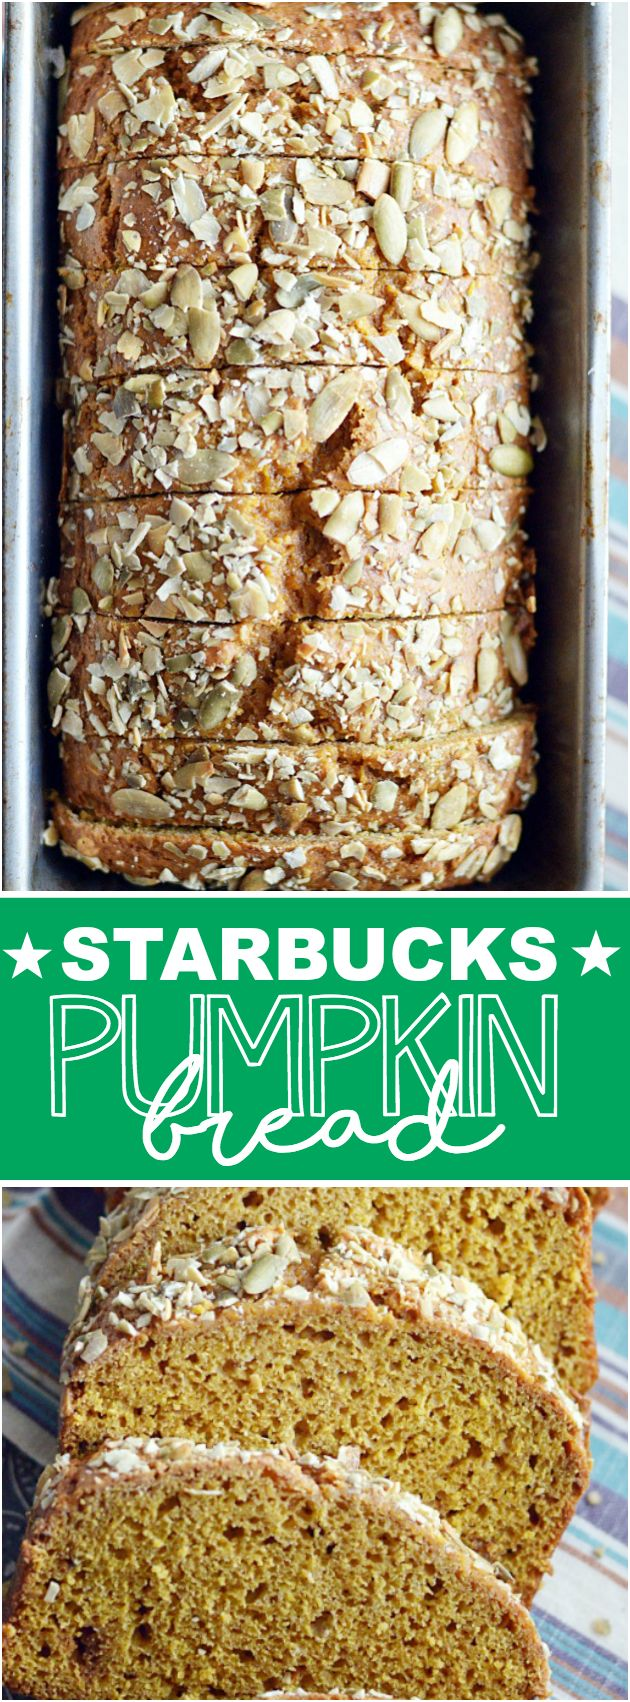 569 best better than starbucks images on pinterest bread shop